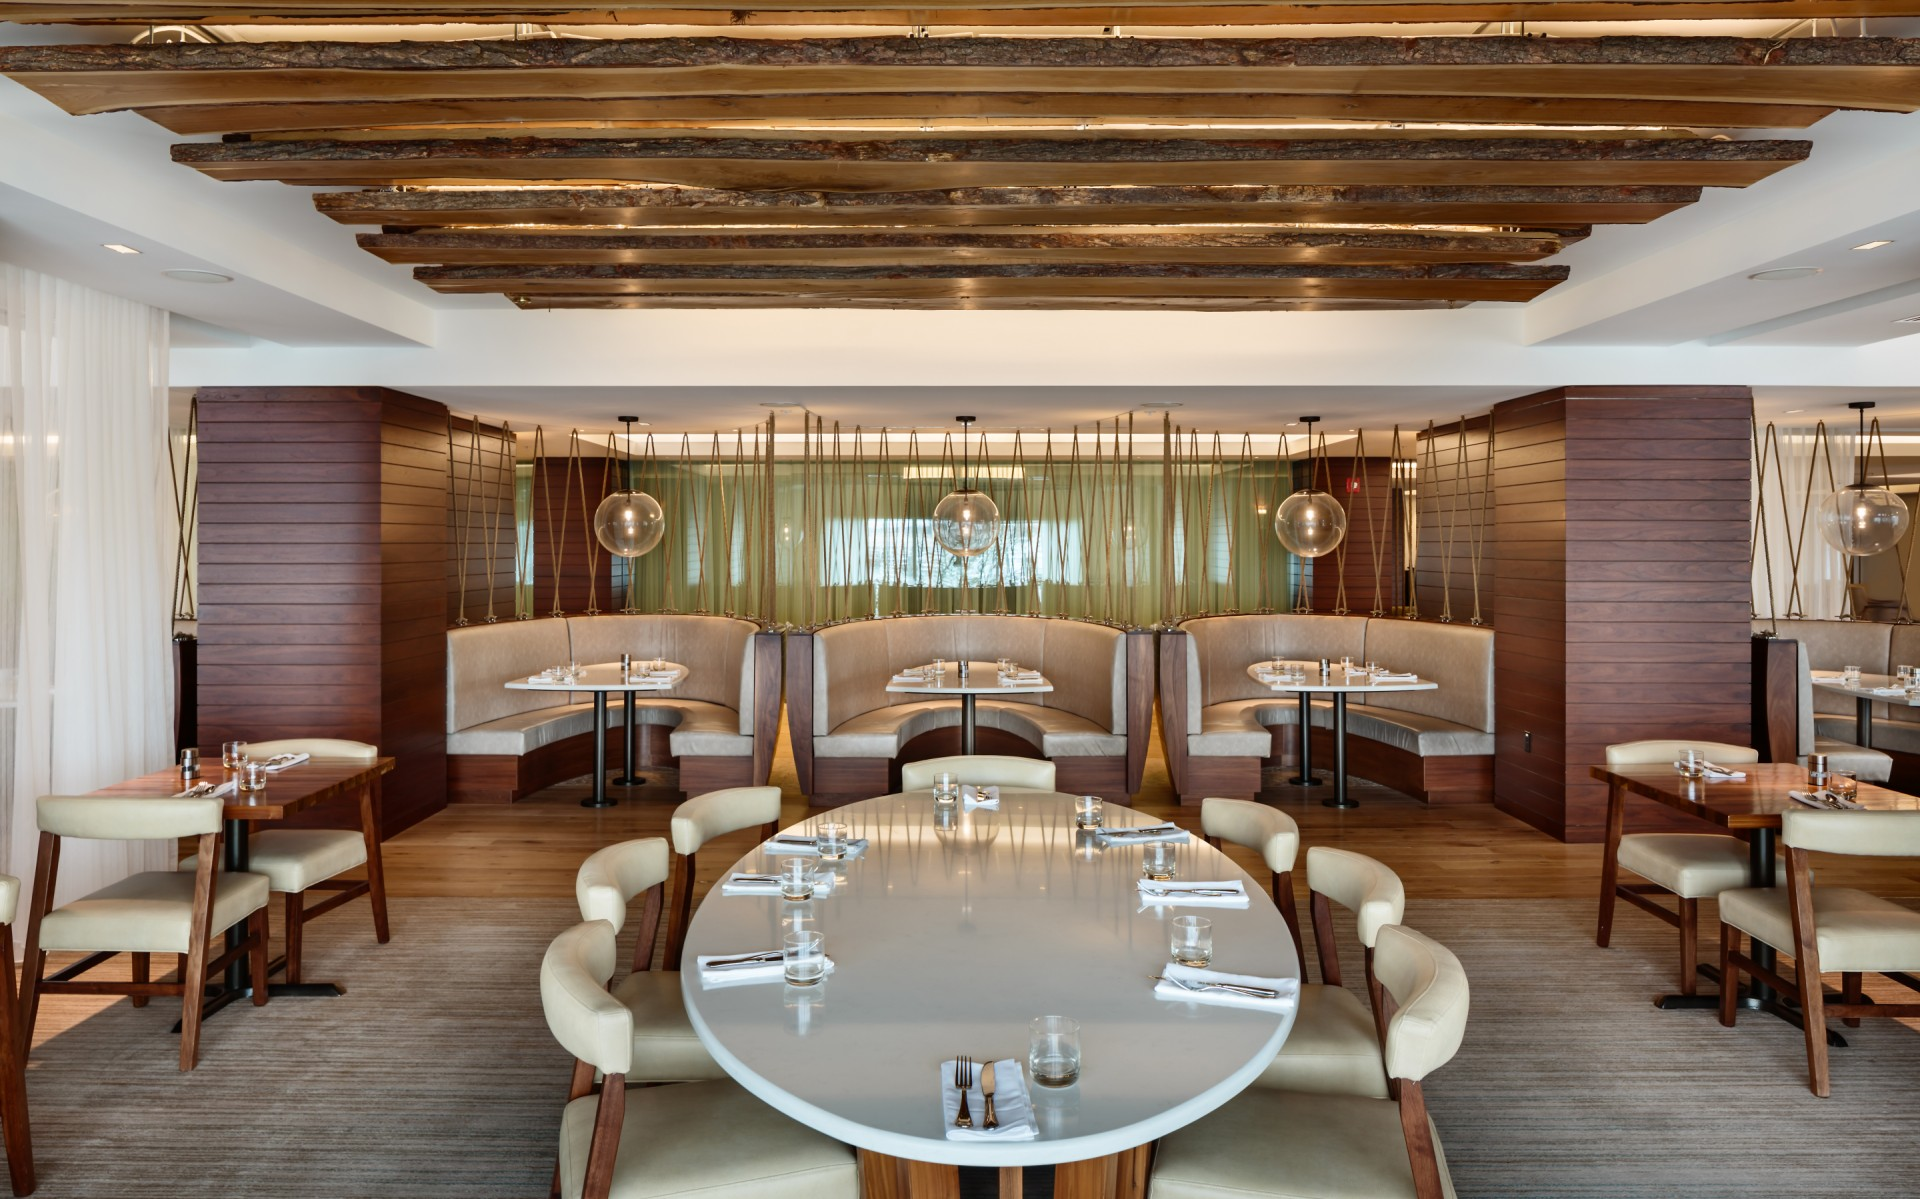 Ghatan also specified Lumenpulse luminaires to create a signature look in the restaurant's floating wood planks ceiling.  – Roberto Farren